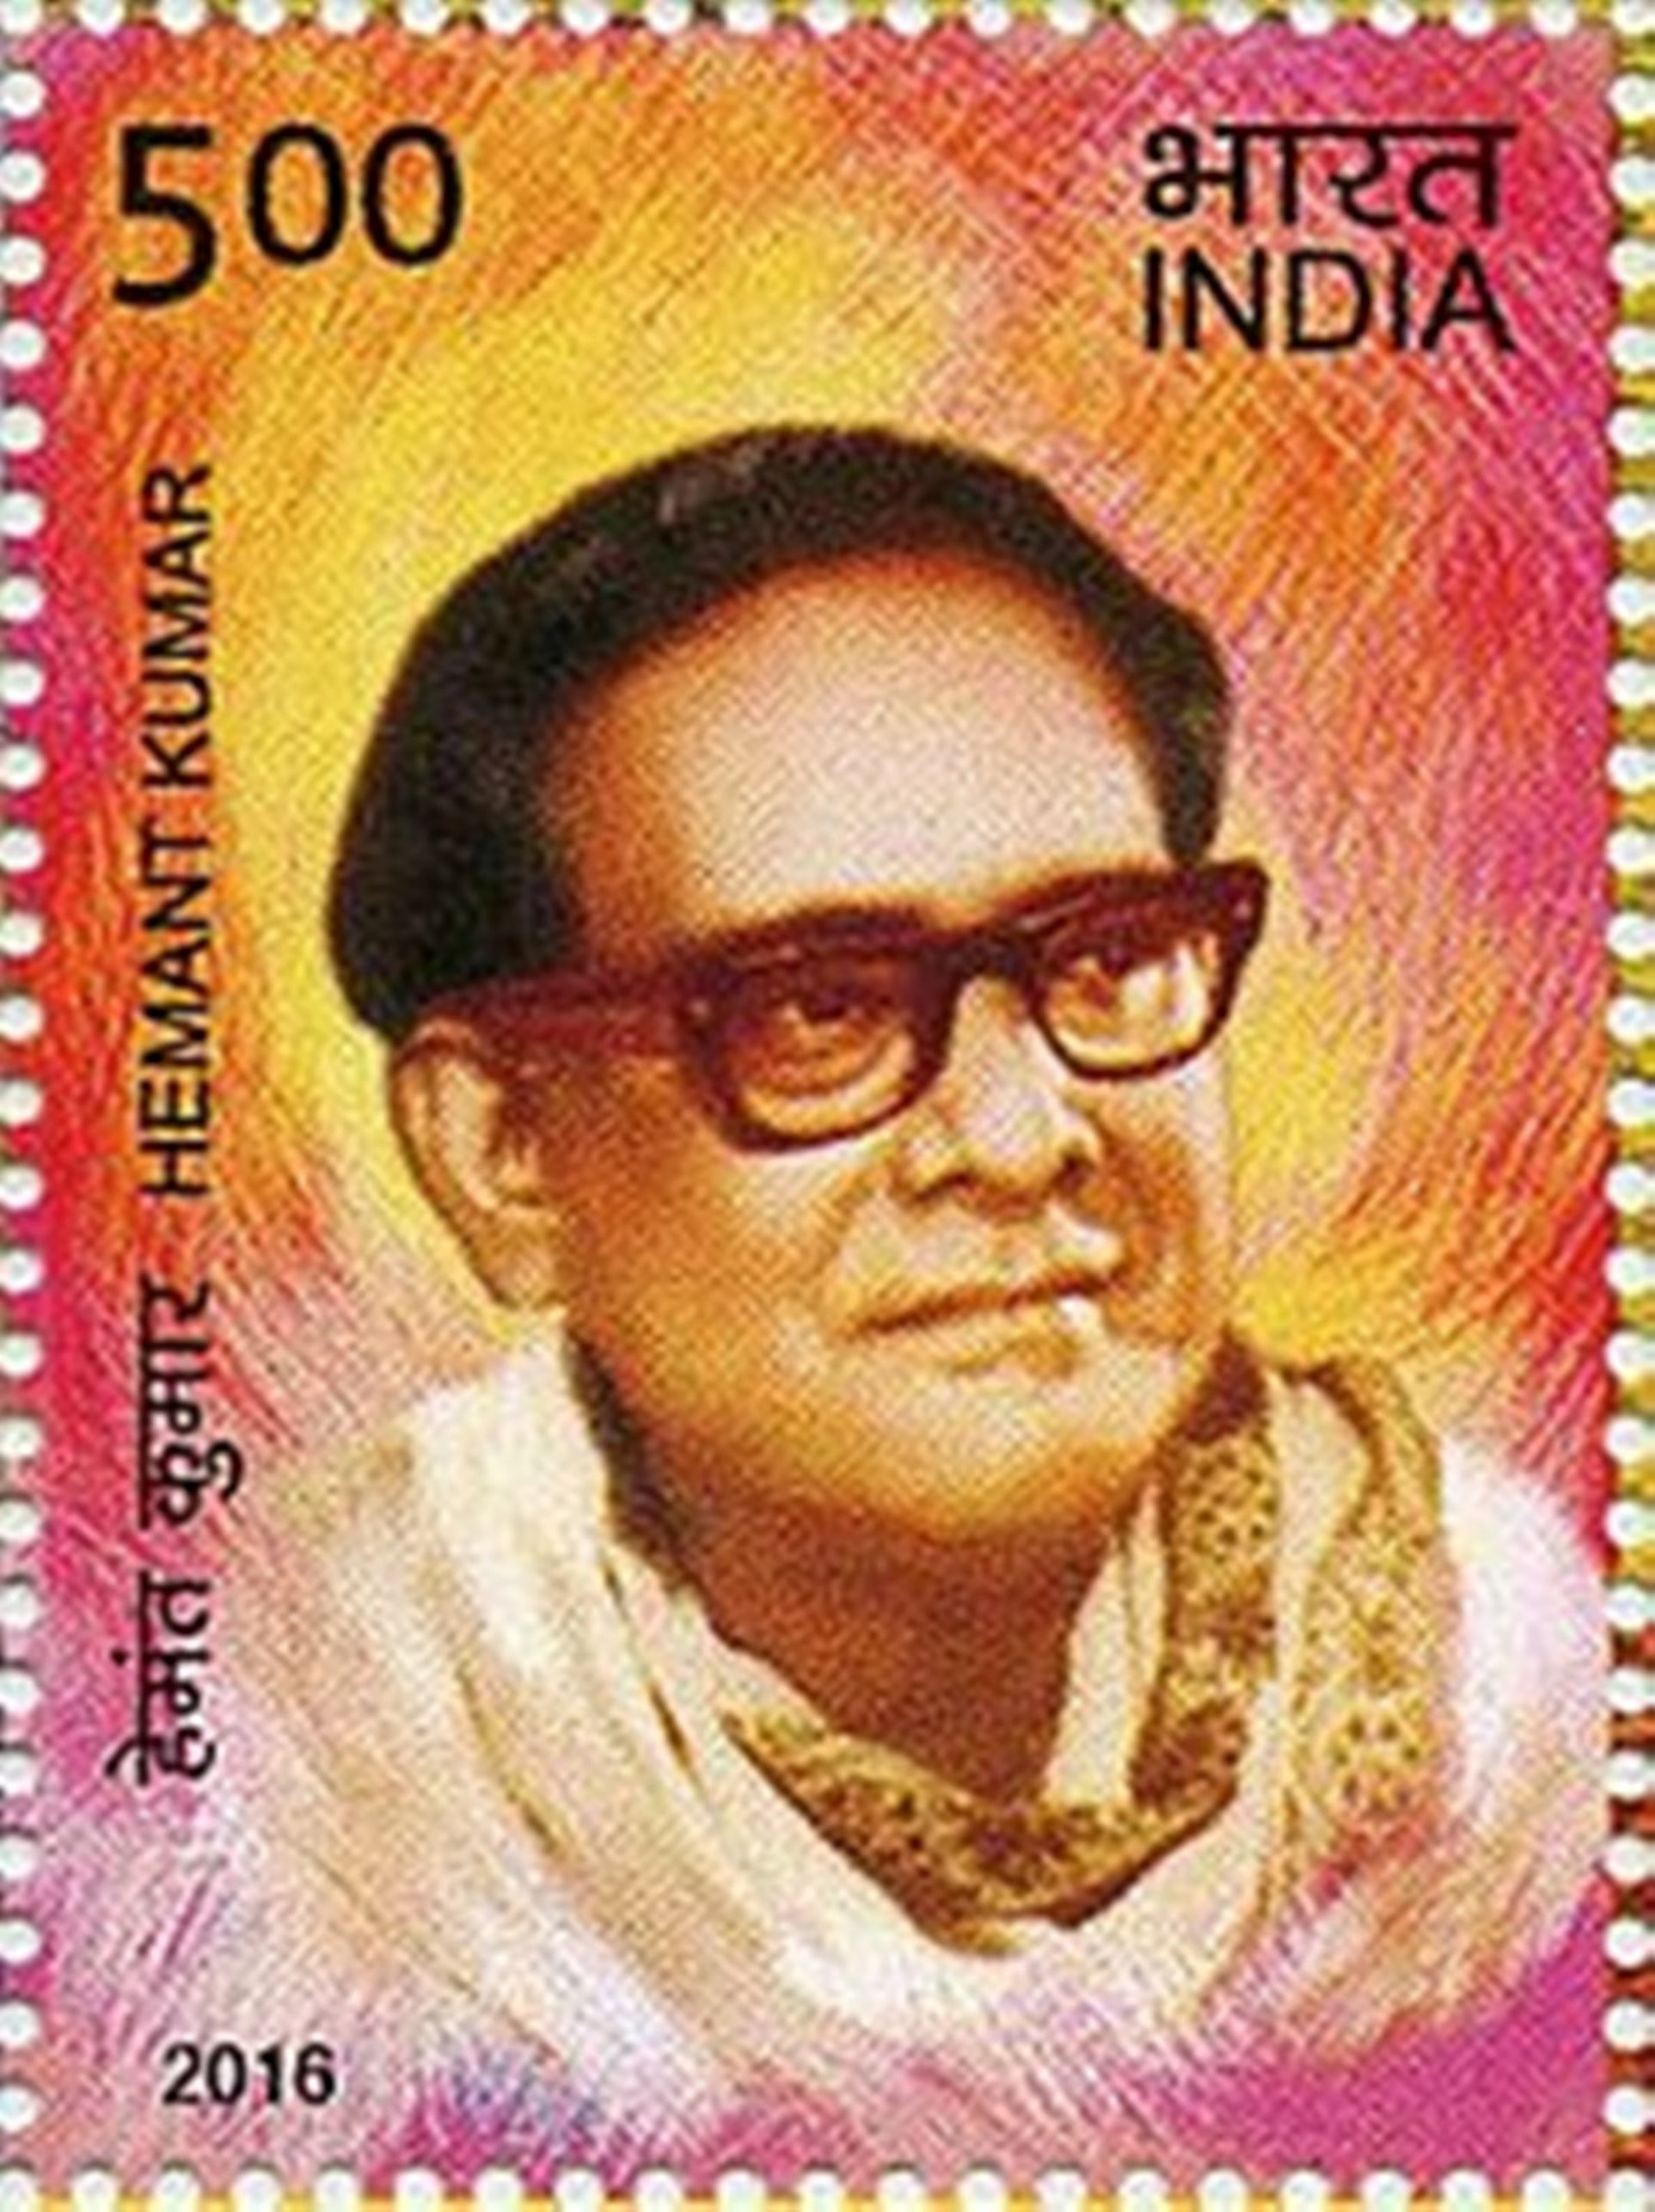 Genius Hemant Da Kumar S Songs And Tunes Are Immortal Veteran Actor Biswajeet Revisits His Maestro Mentor S Legacy On His 100th Birth Anniv